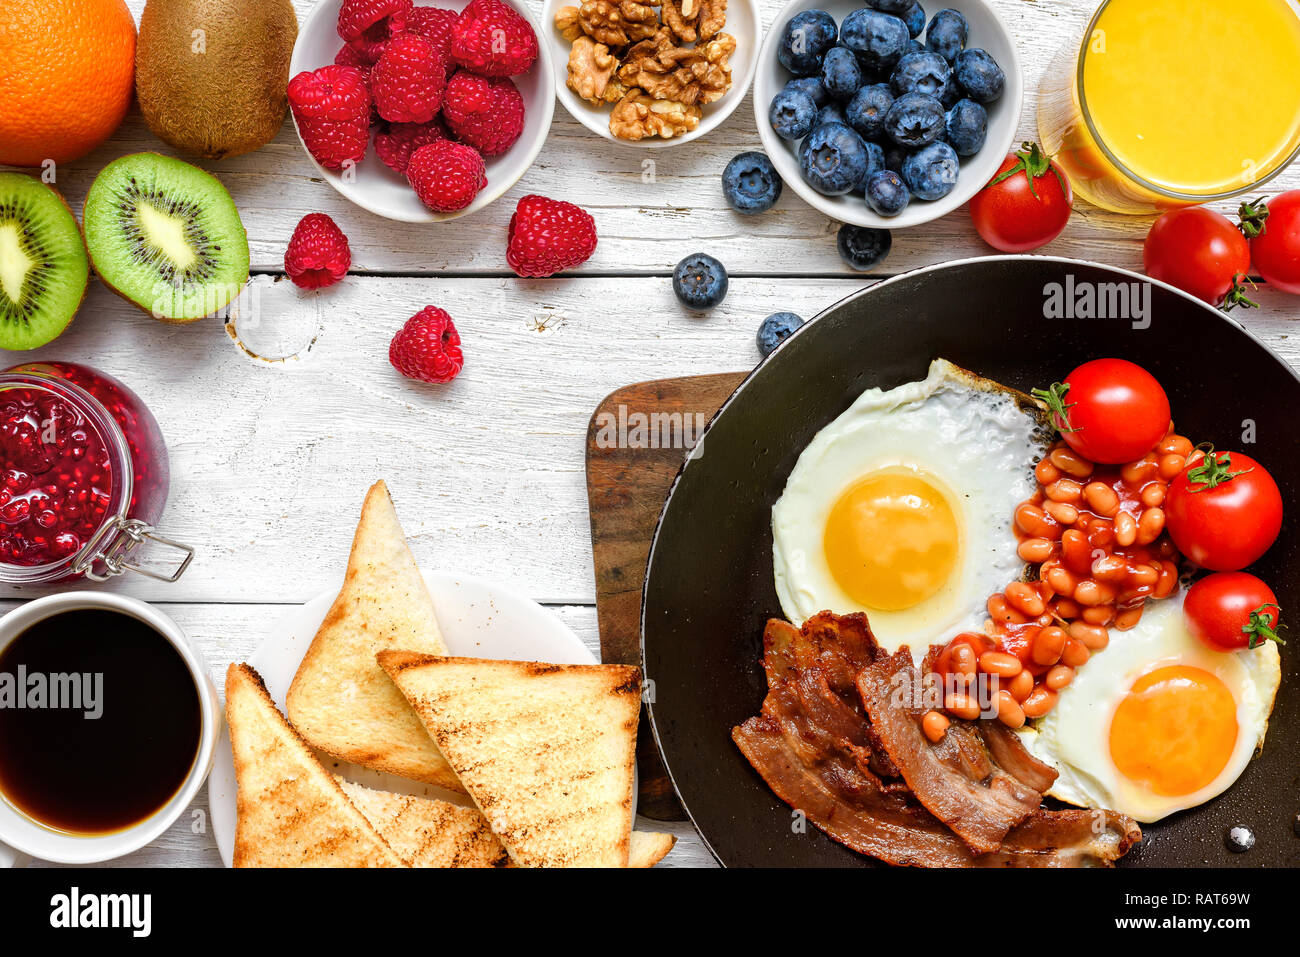 English breakfast - fried egg, beans, tomatoes, coffee, bacon and toast with fresh fruits and berries. Top view - Stock Image